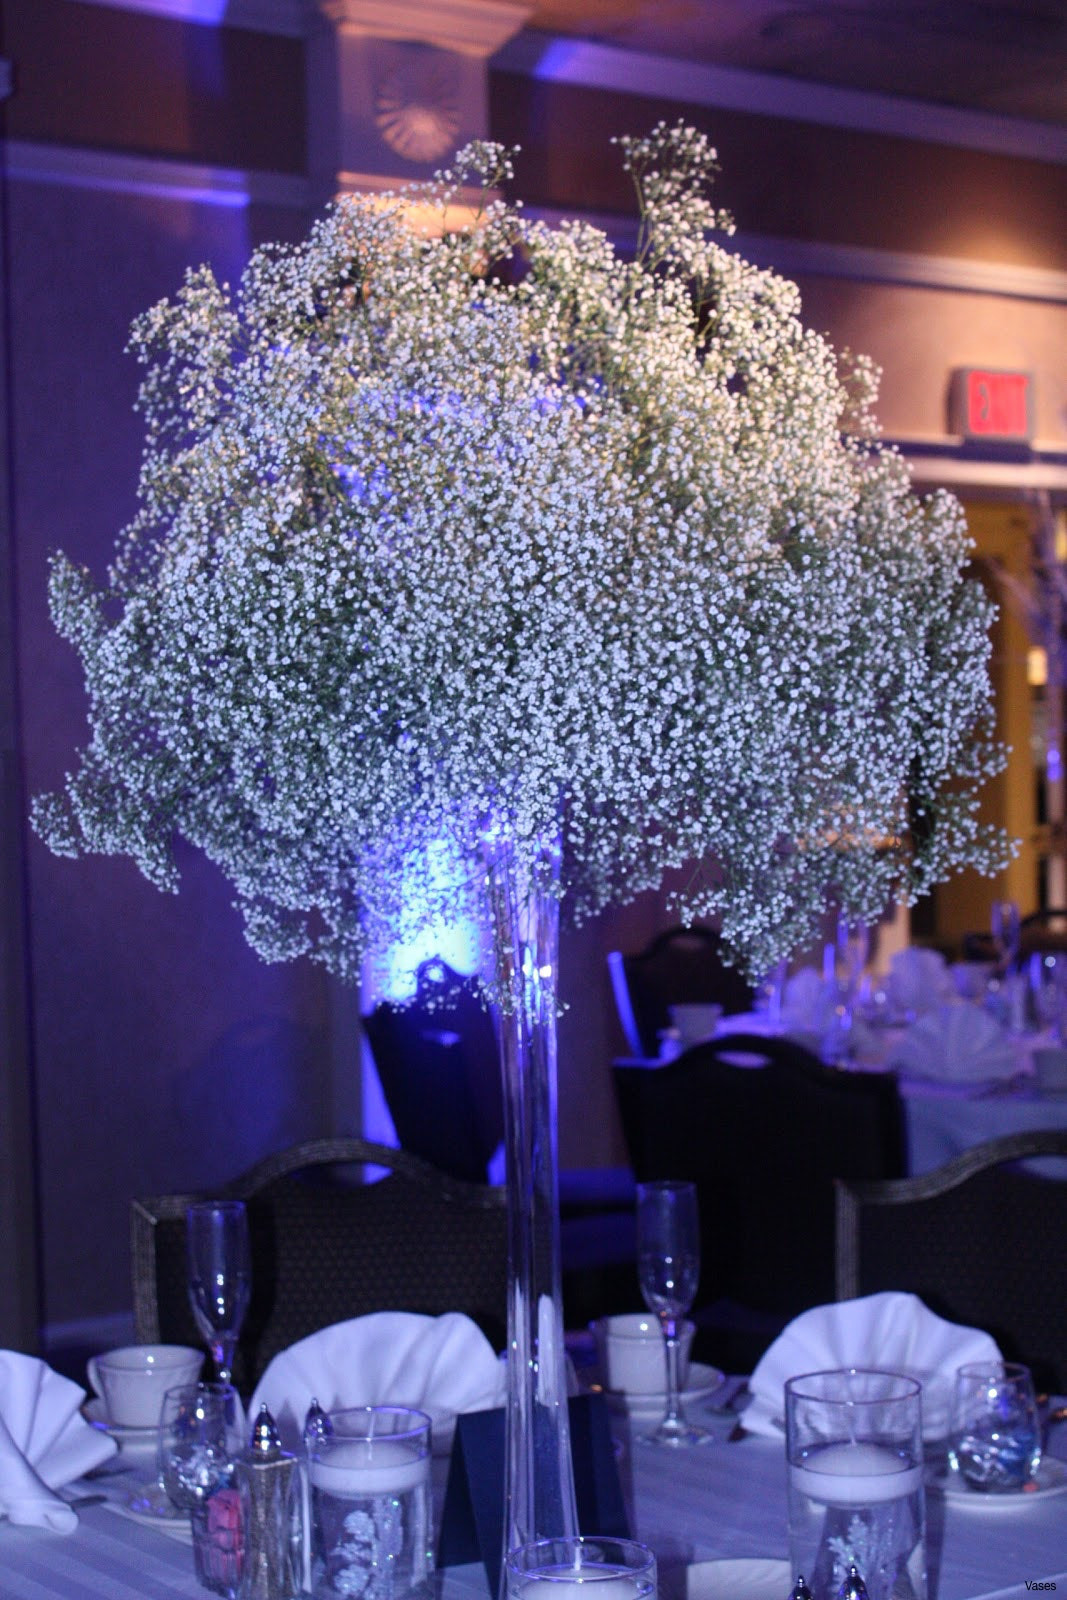 gold vases wholesale of wedding decoration ideas on a budget awesome cheap wedding reception in wedding decoration ideas on a budget awesome cheap wedding reception decorations tent draping 0d tags amazing